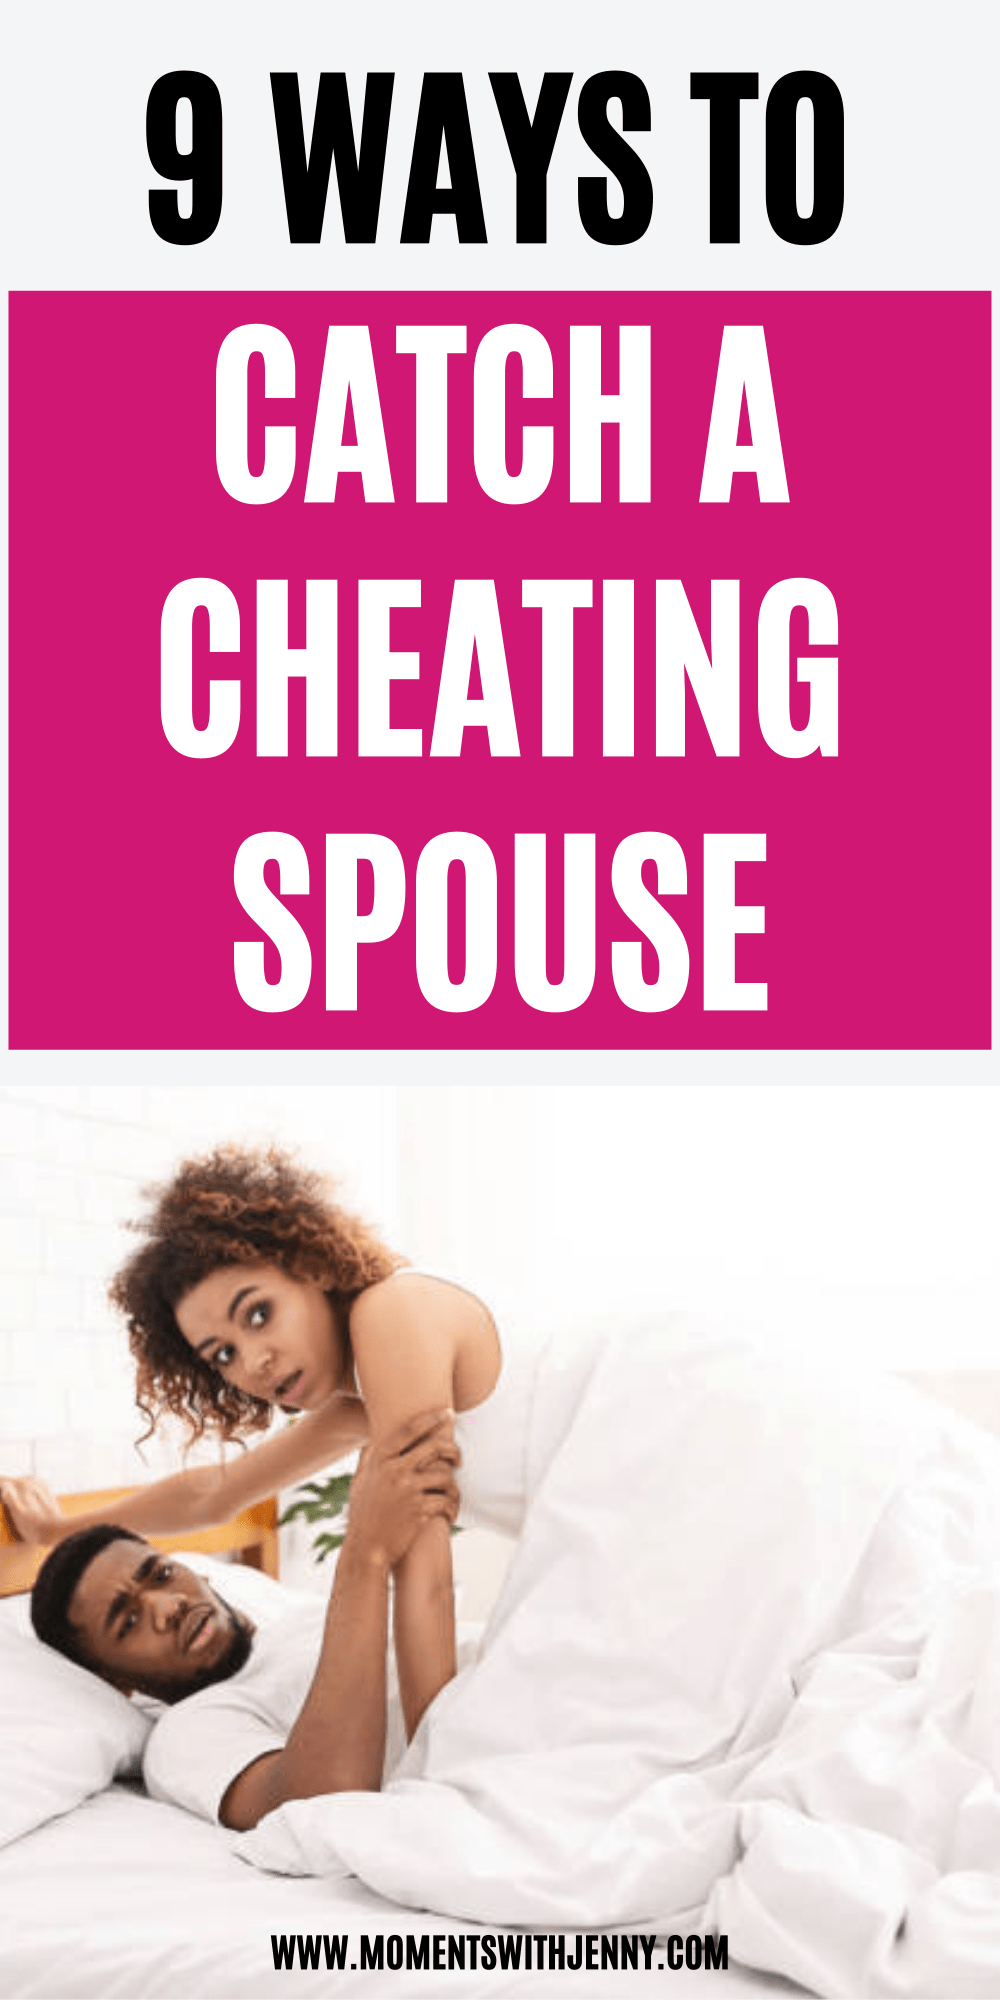 9 ways to catch a cheating spouse